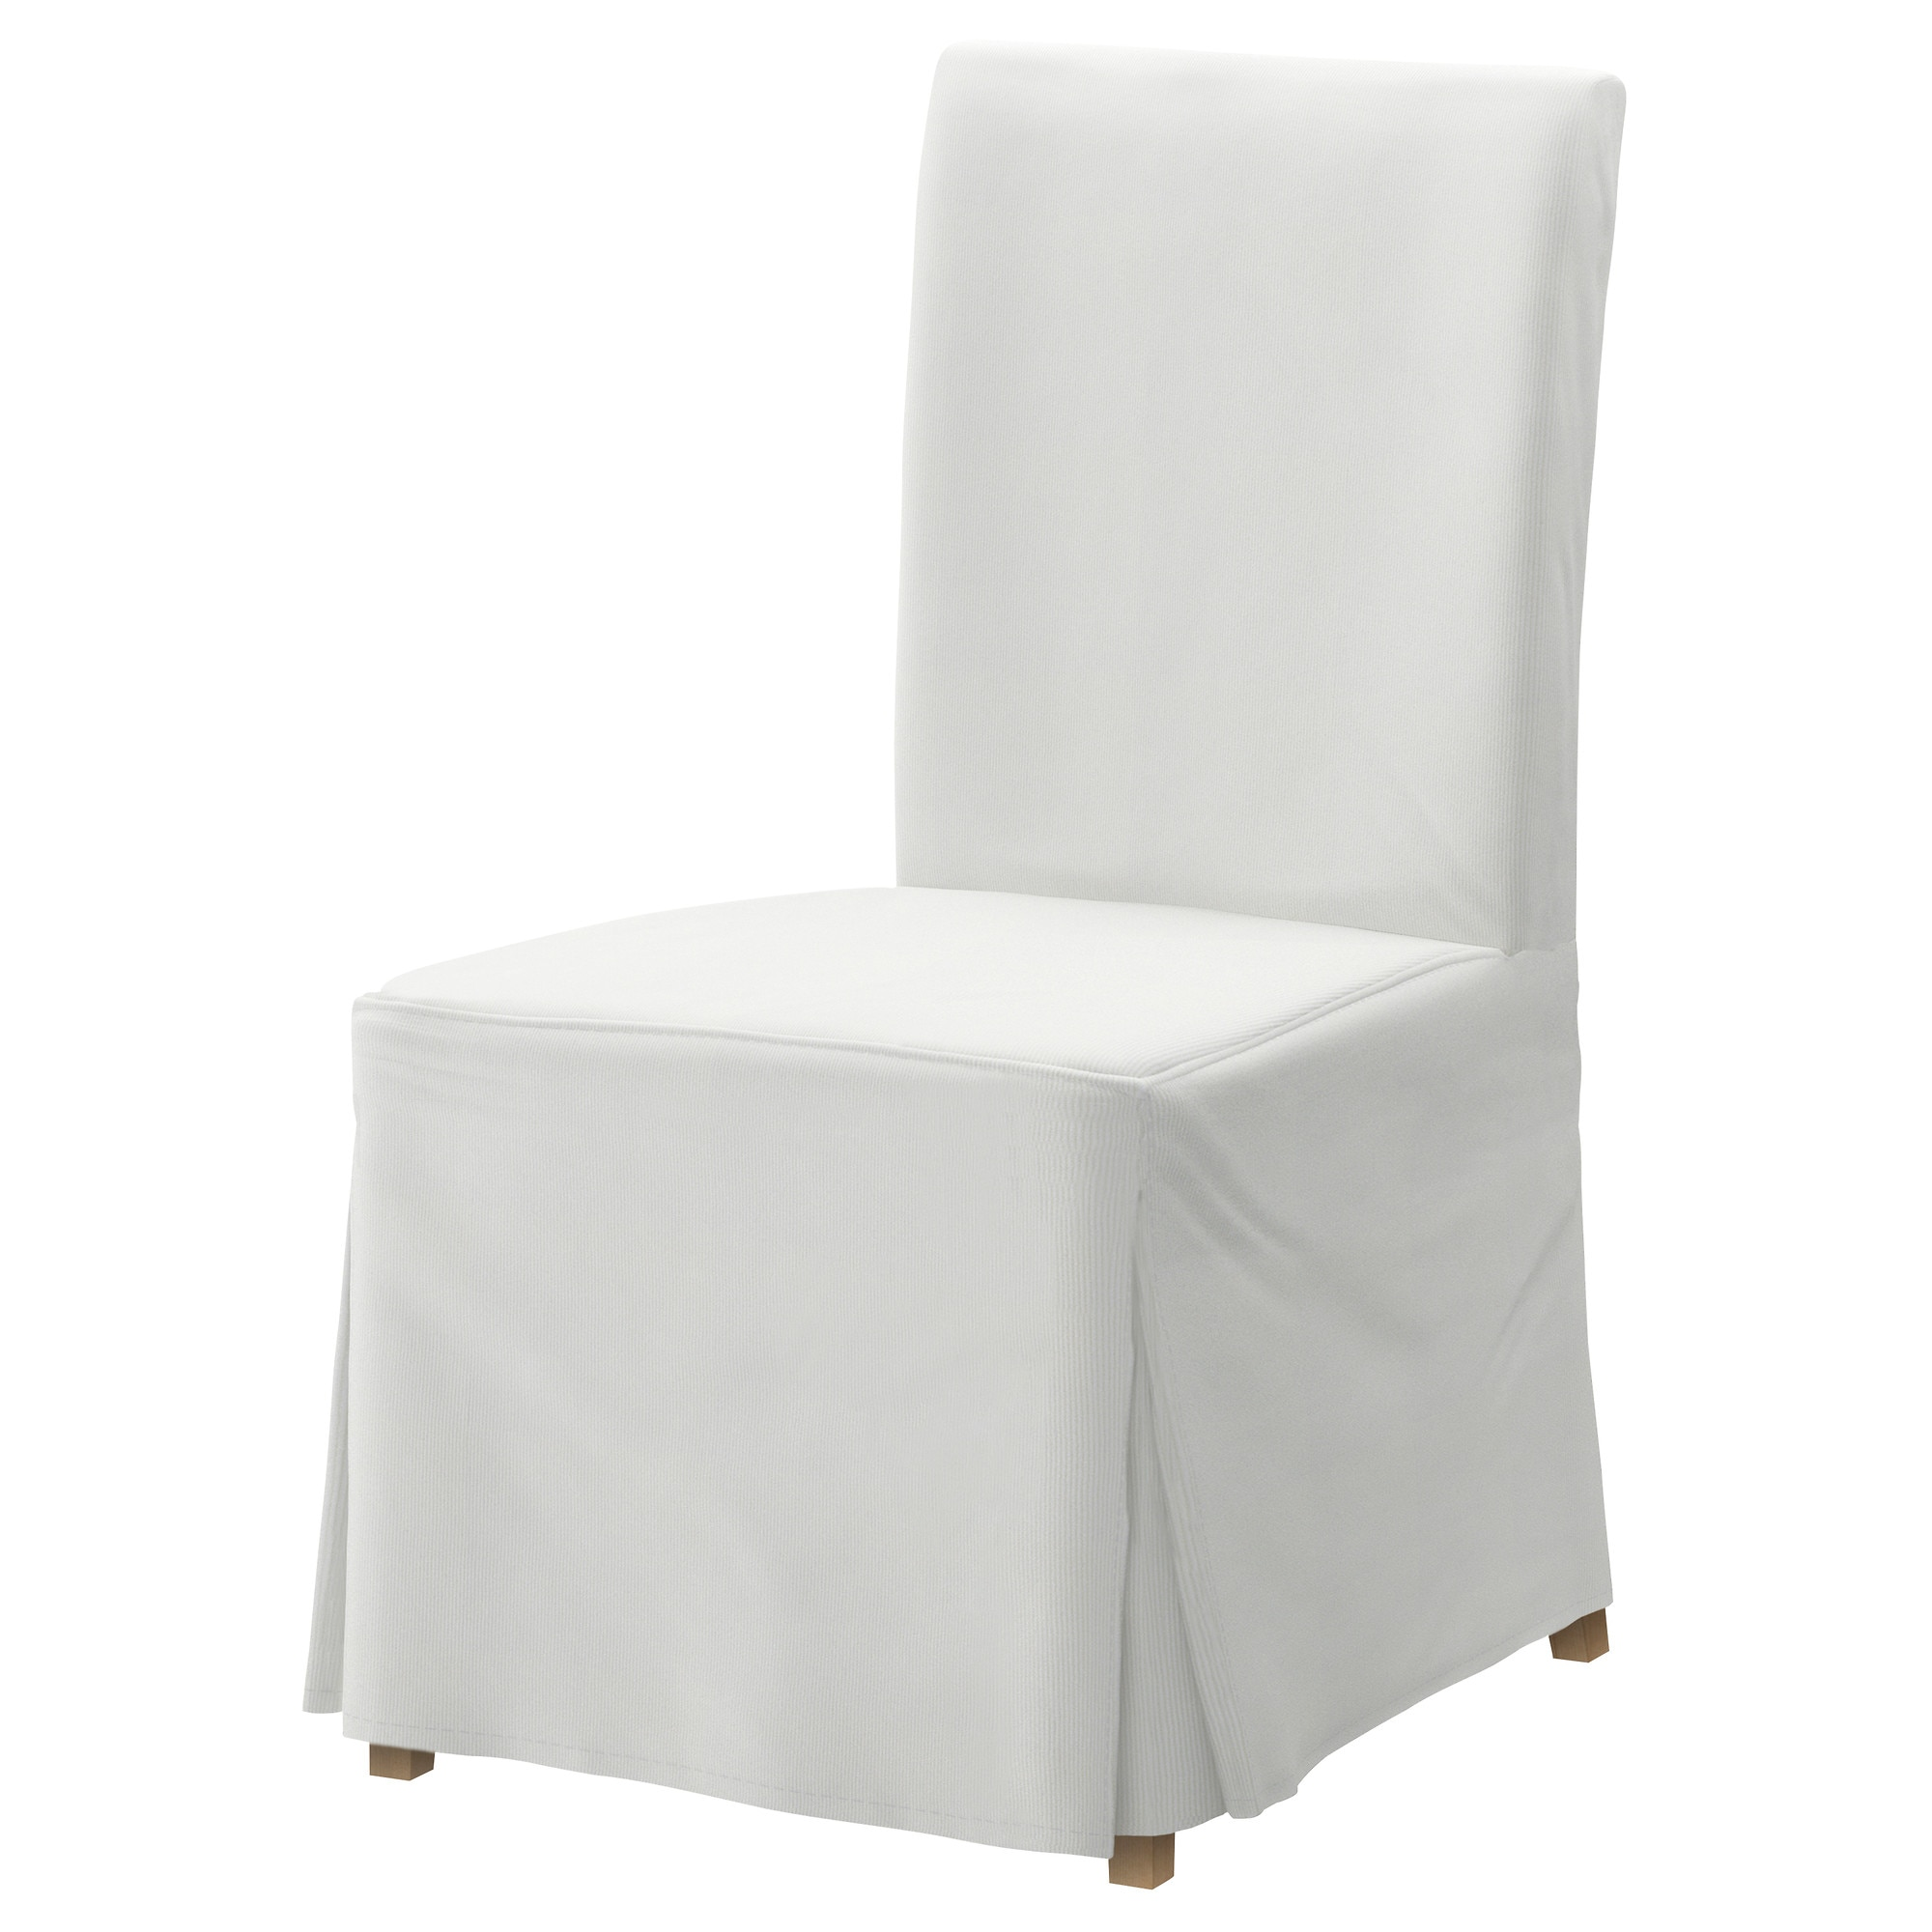 HENRIKSDAL Chair with long cover Blekinge white birch IKEA